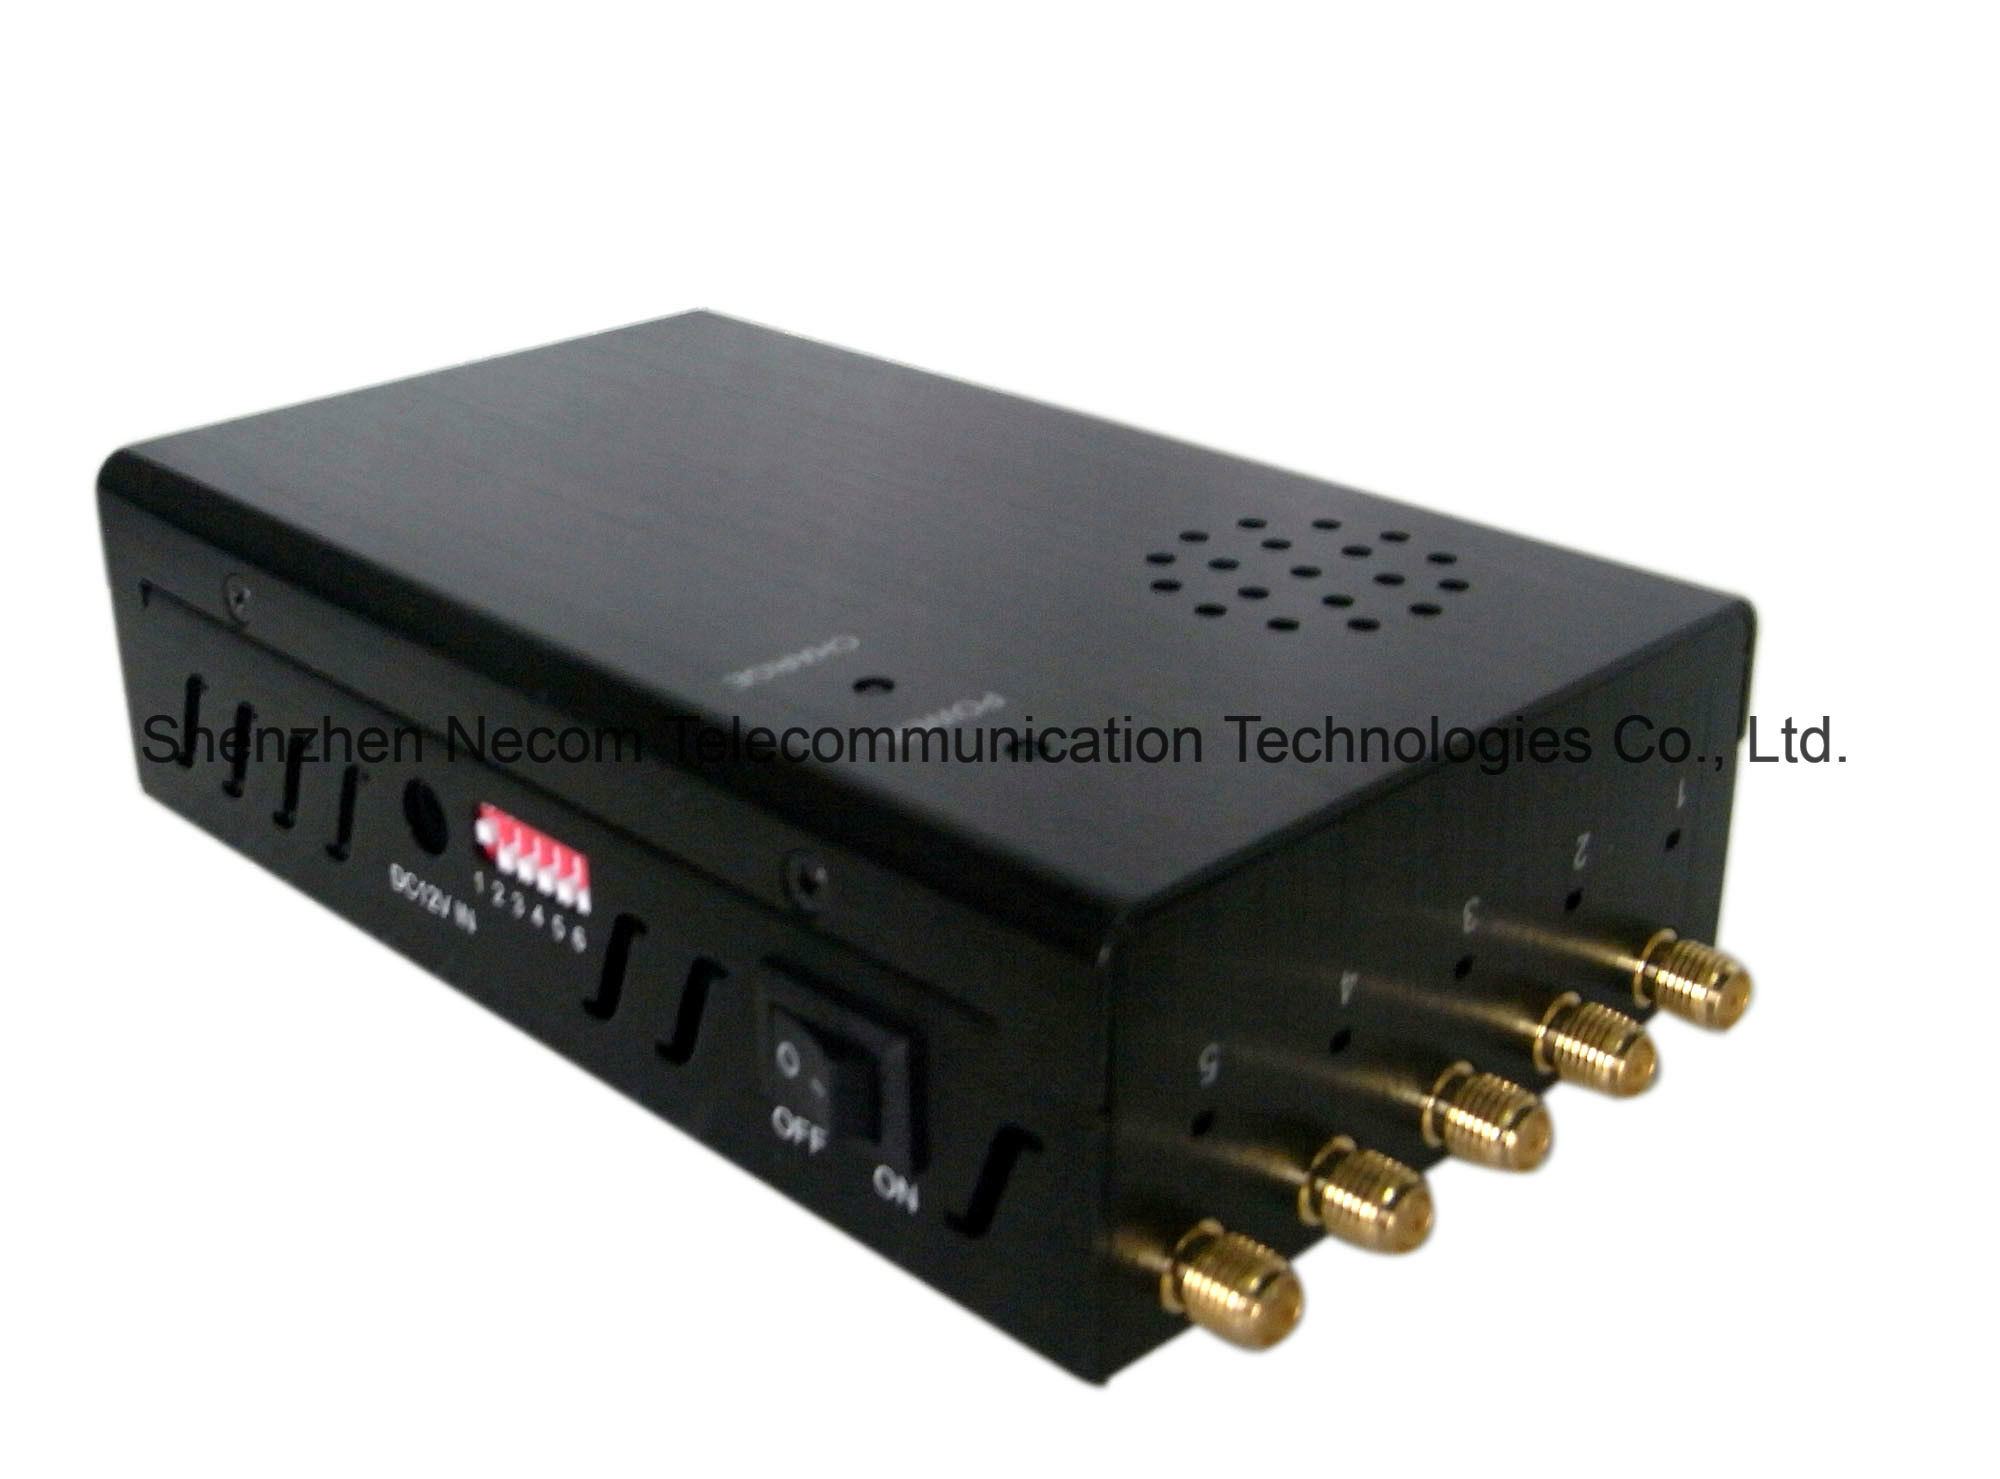 Phone jammer cigarette usa - phone jammer laws by owner